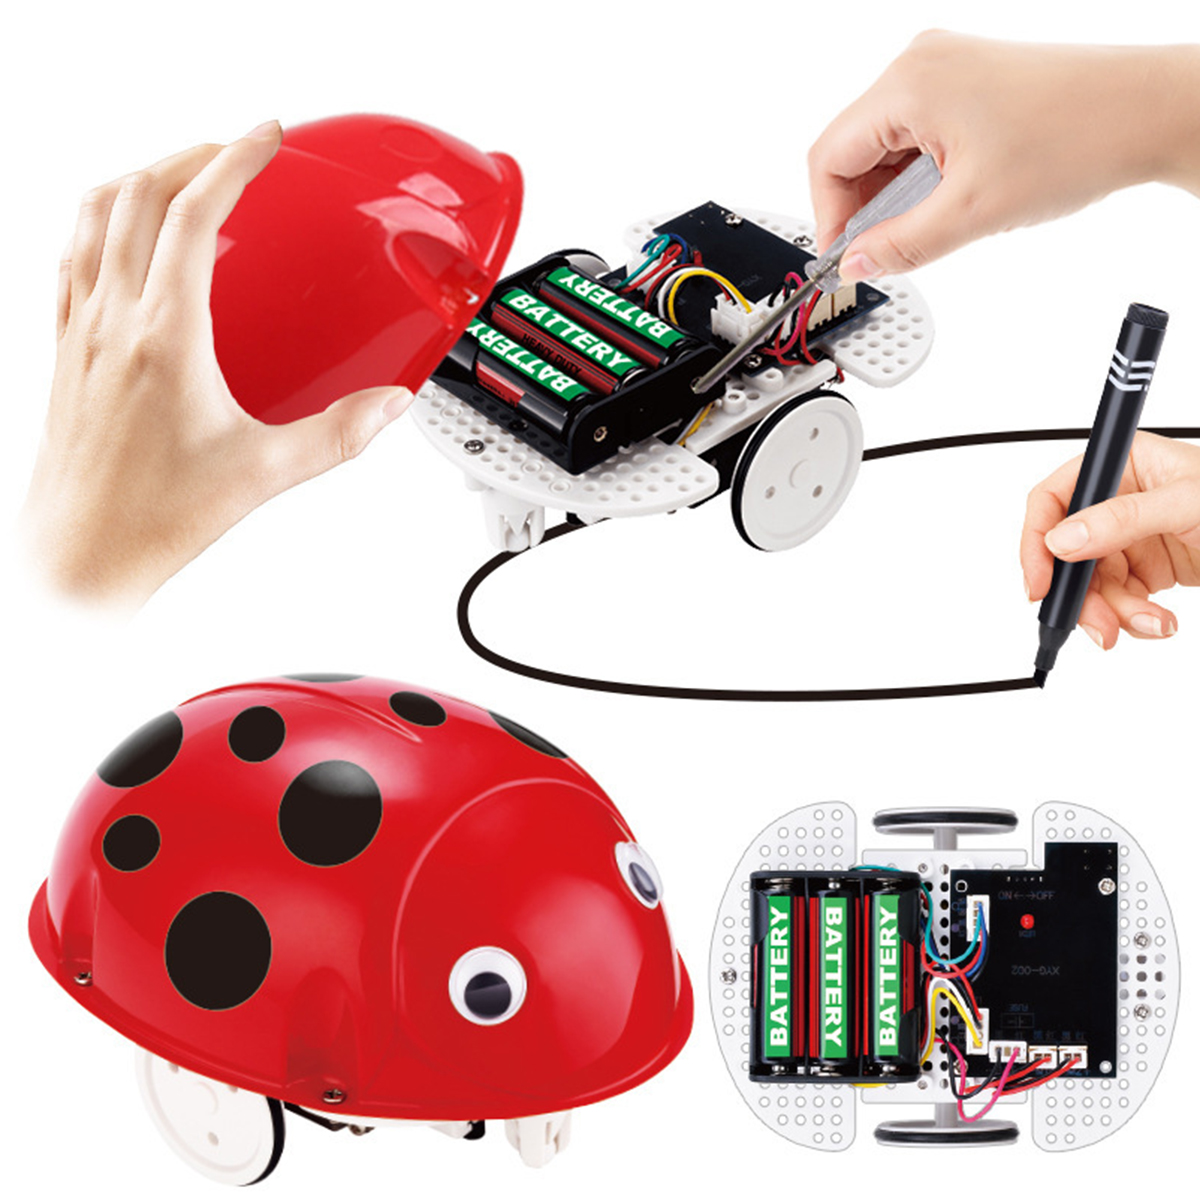 Robot Toys Educational Pen Inductive Toy Follow Any Drawn Line Cute Gift for Children - Photo: 6